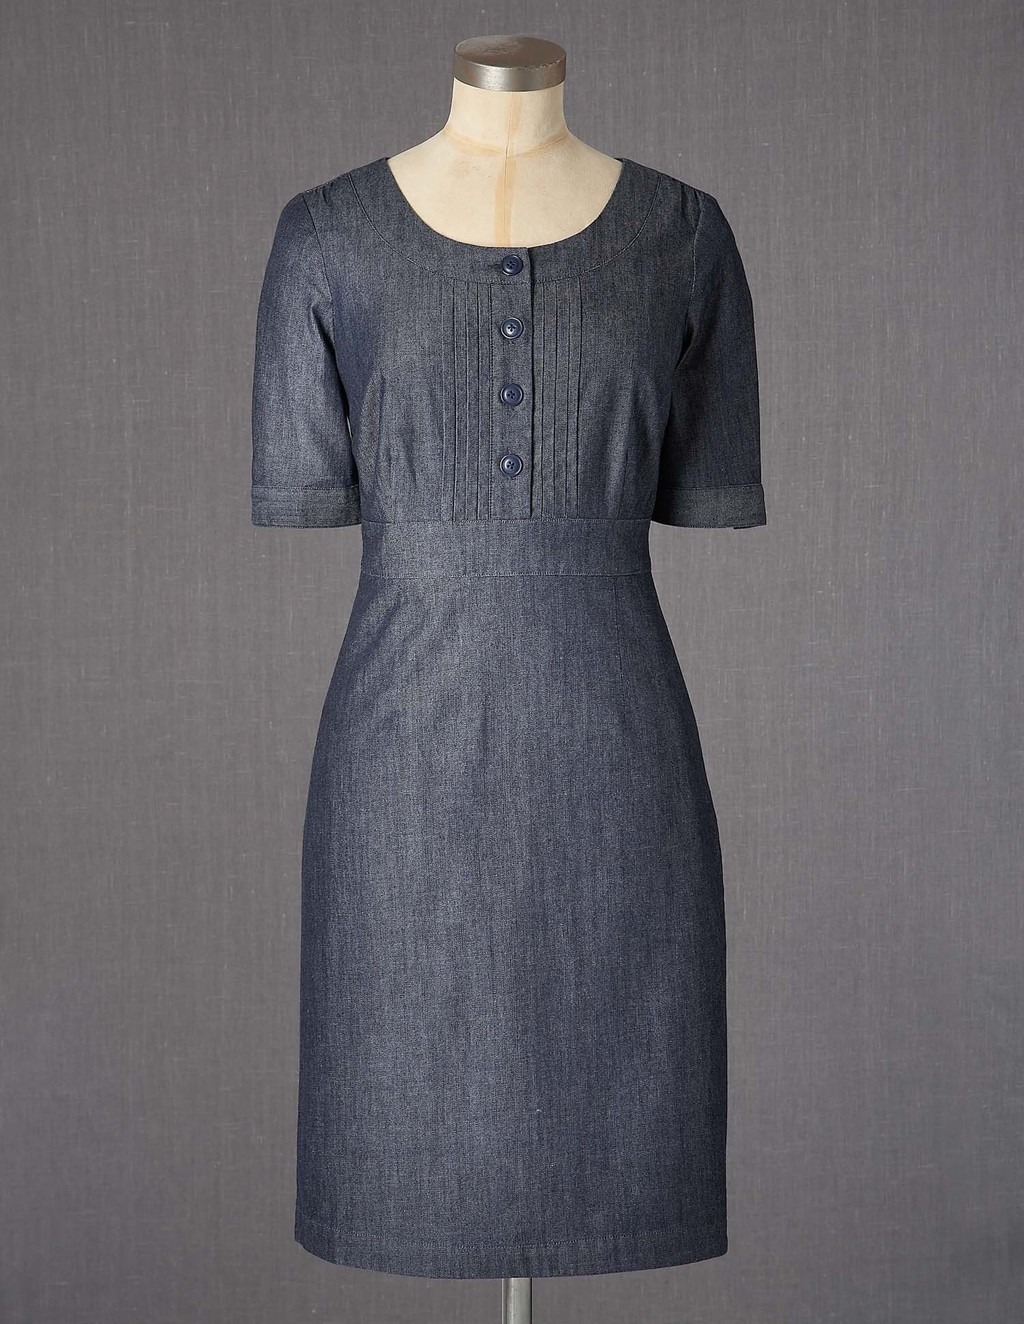 Westbourne Dress - style: shift; neckline: round neck; fit: tailored/fitted; pattern: plain; bust detail: buttons at bust (in middle at breastbone)/zip detail at bust; predominant colour: denim; occasions: casual; length: just above the knee; fibres: cotton - 100%; sleeve length: half sleeve; sleeve style: standard; pattern type: fabric; pattern size: standard; texture group: other - light to midweight; season: a/w 2013